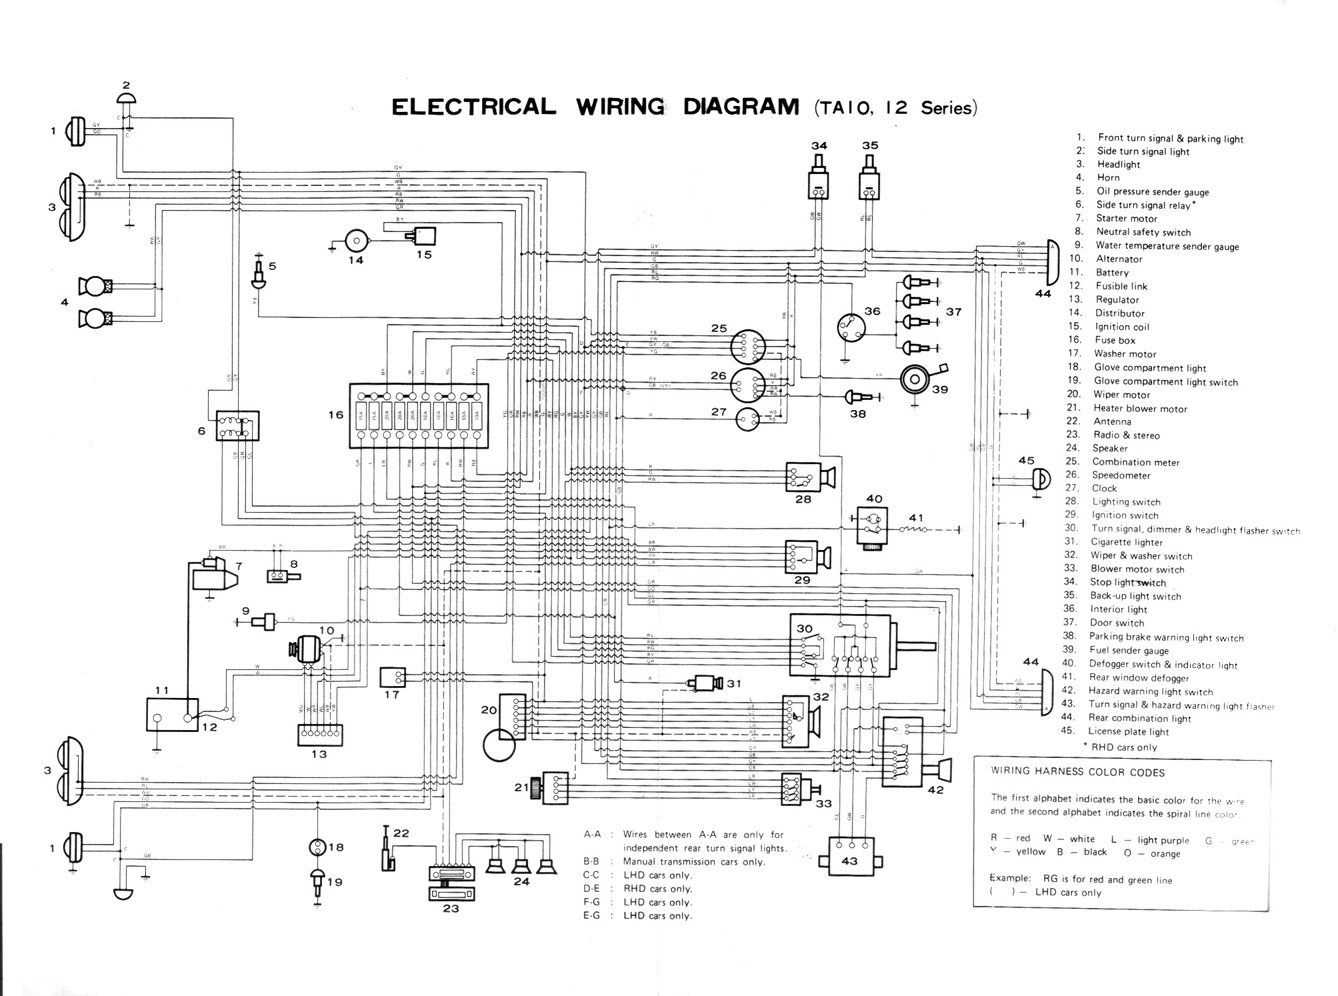 43722 A340 Wiring Diagrams further Note On Celica Mr Prius And Rav Ig Relay Provides Voltage To Ignition Coils For Additional Information On Ig Relay See Ig Relay Under Miscellaneous Controls in addition Gm Alternator Pictures moreover ScanViewPage asp additionally 2000 Celica Gts Ecu Wiring Diagram. on celica wiring diagram